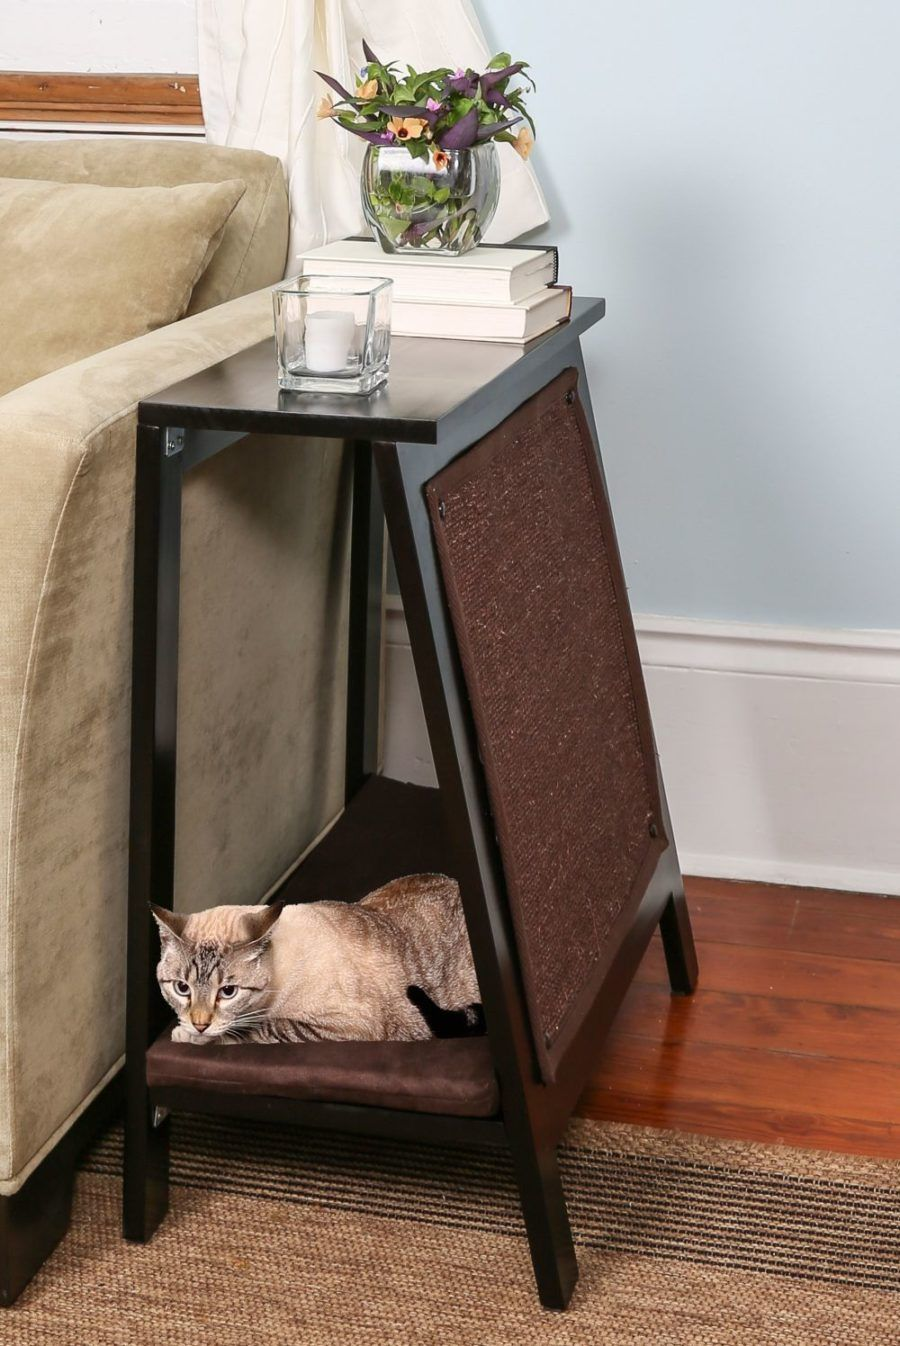 25 pieces of cat furniture to keep your home stylish